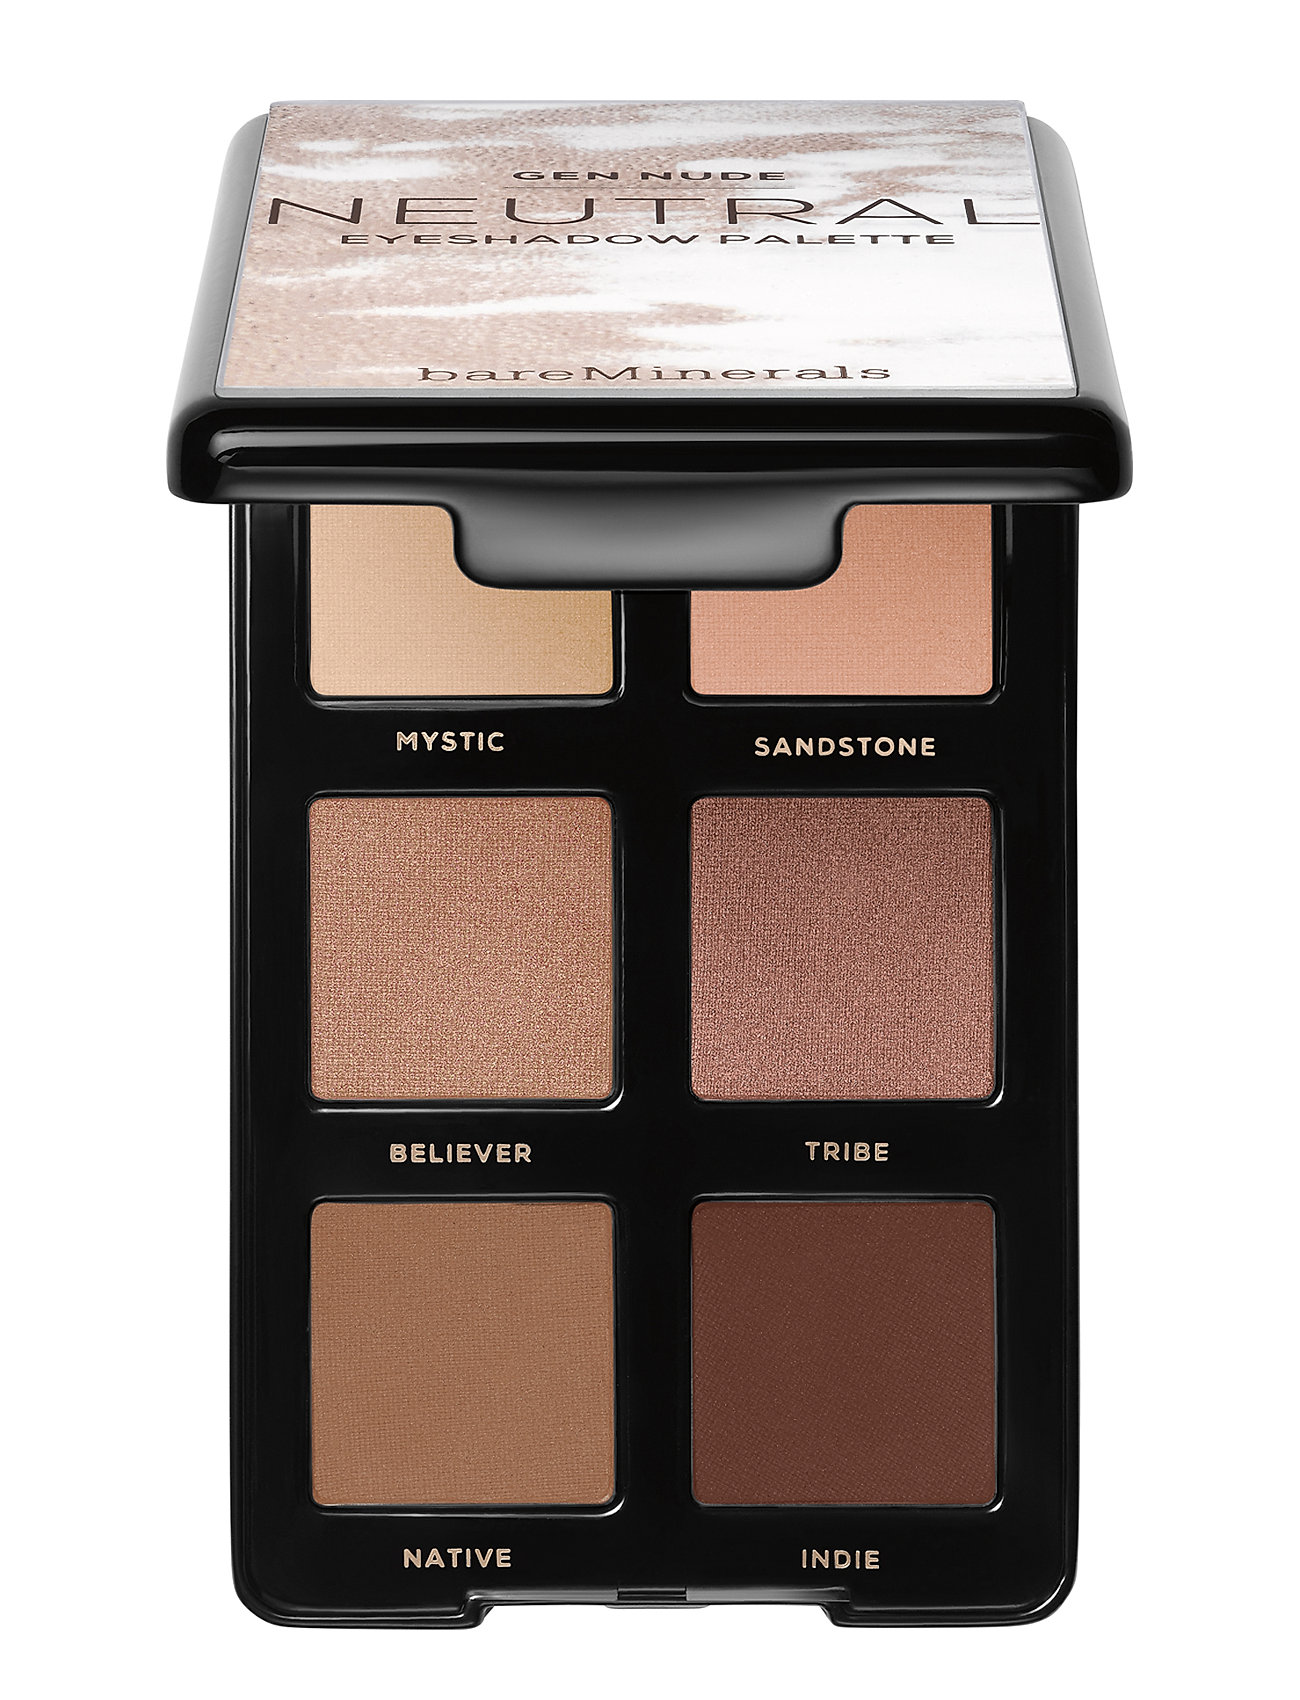 Image of Gen Nude Eyeshadow Palette Beauty WOMEN Makeup Eyes Eyeshadow Palettes Multi/mønstret BareMinerals (3427730705)